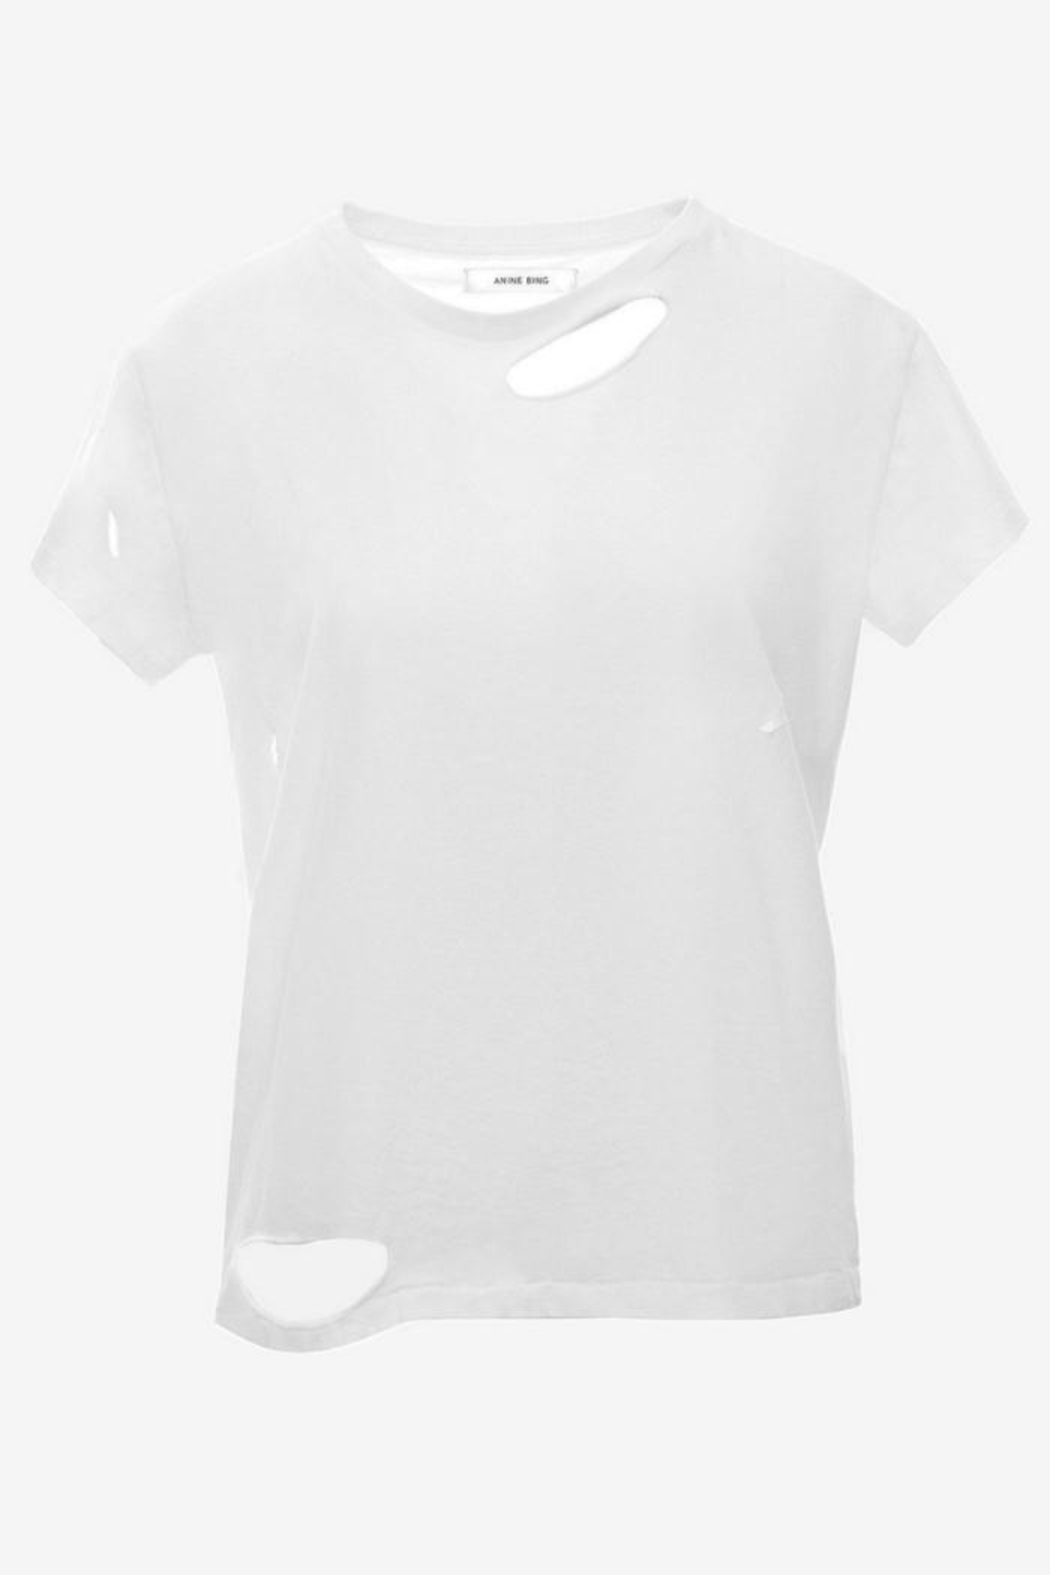 Anine Bing Distressed T-Shirt - Back Cropped Image